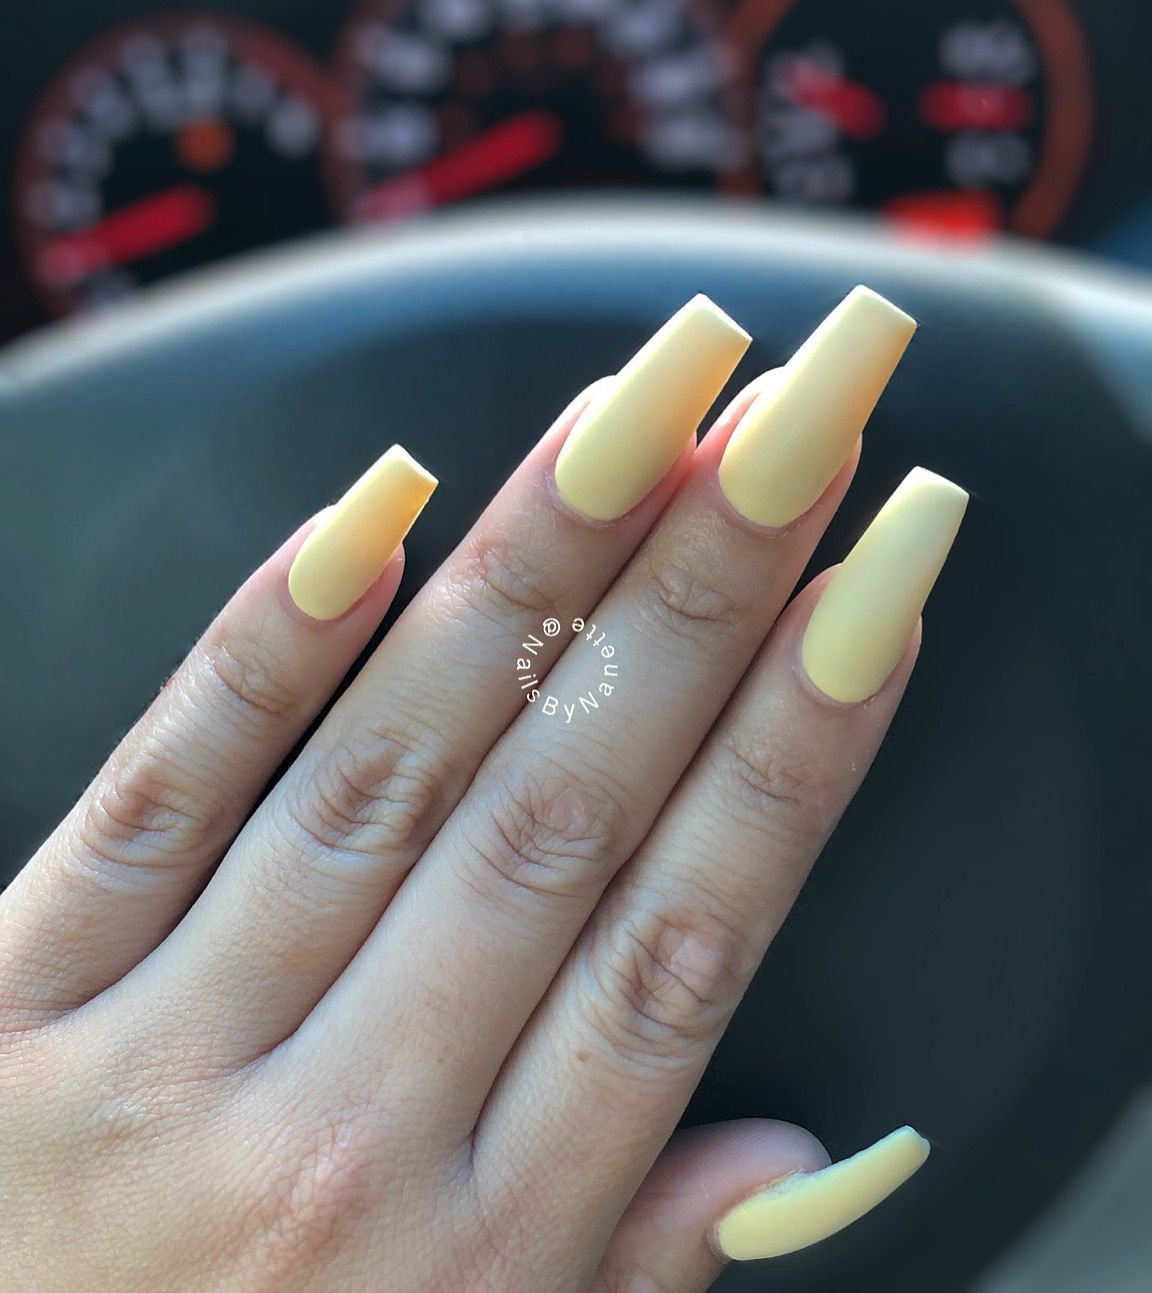 Ballerina Pastel Yellow Matted Coffin Medium Length Nails Or Inpastel Yellow Matted Co Acrylic Nails Yellow Acrylic Nails Pastel Square Acrylic Nails